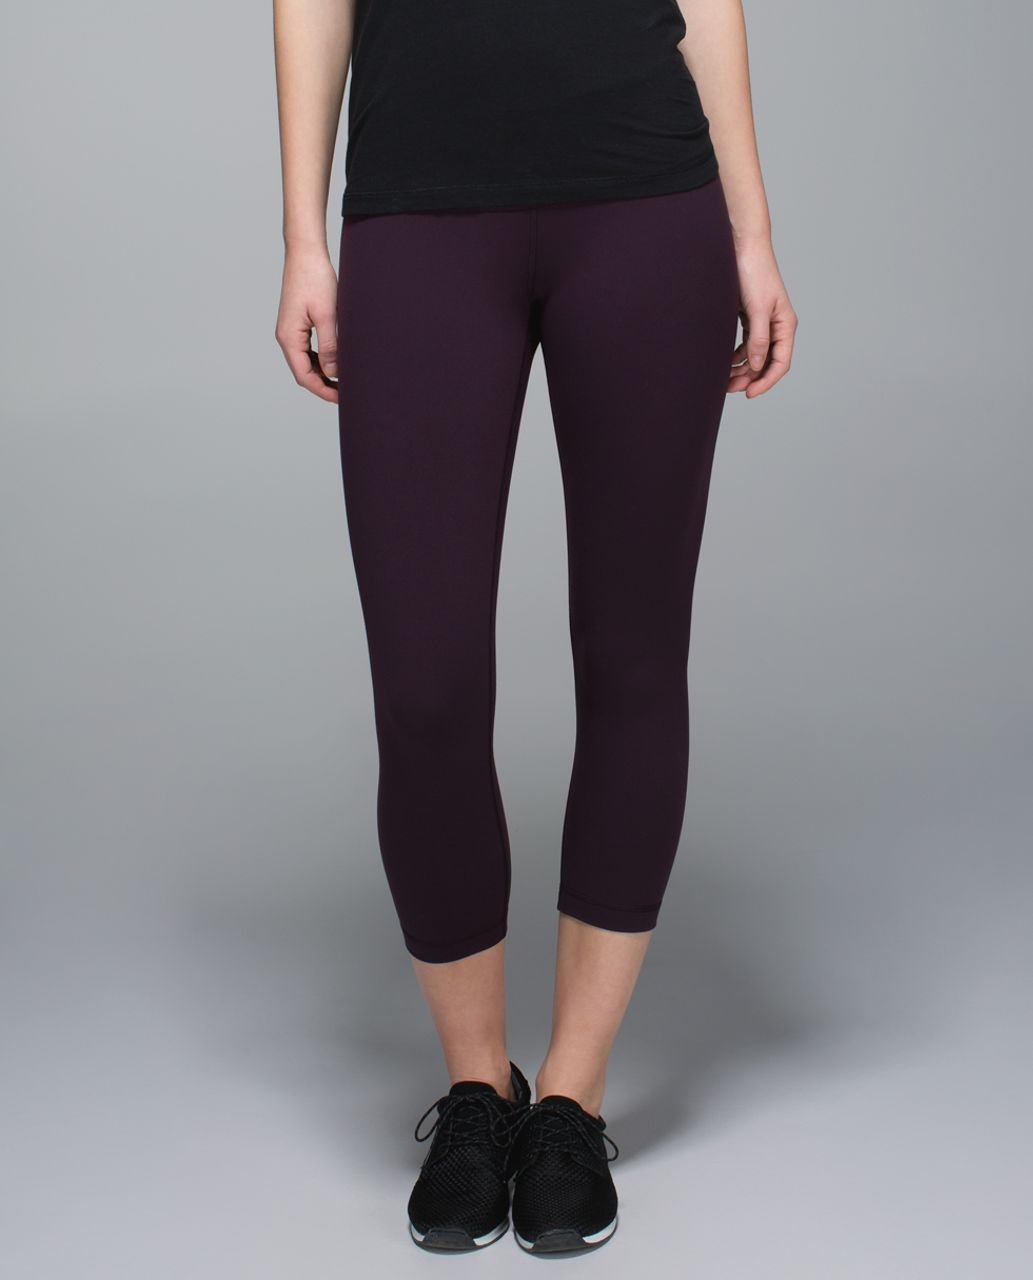 Lululemon Wunder Under Crop II *Full-On Luon - Black Cherry